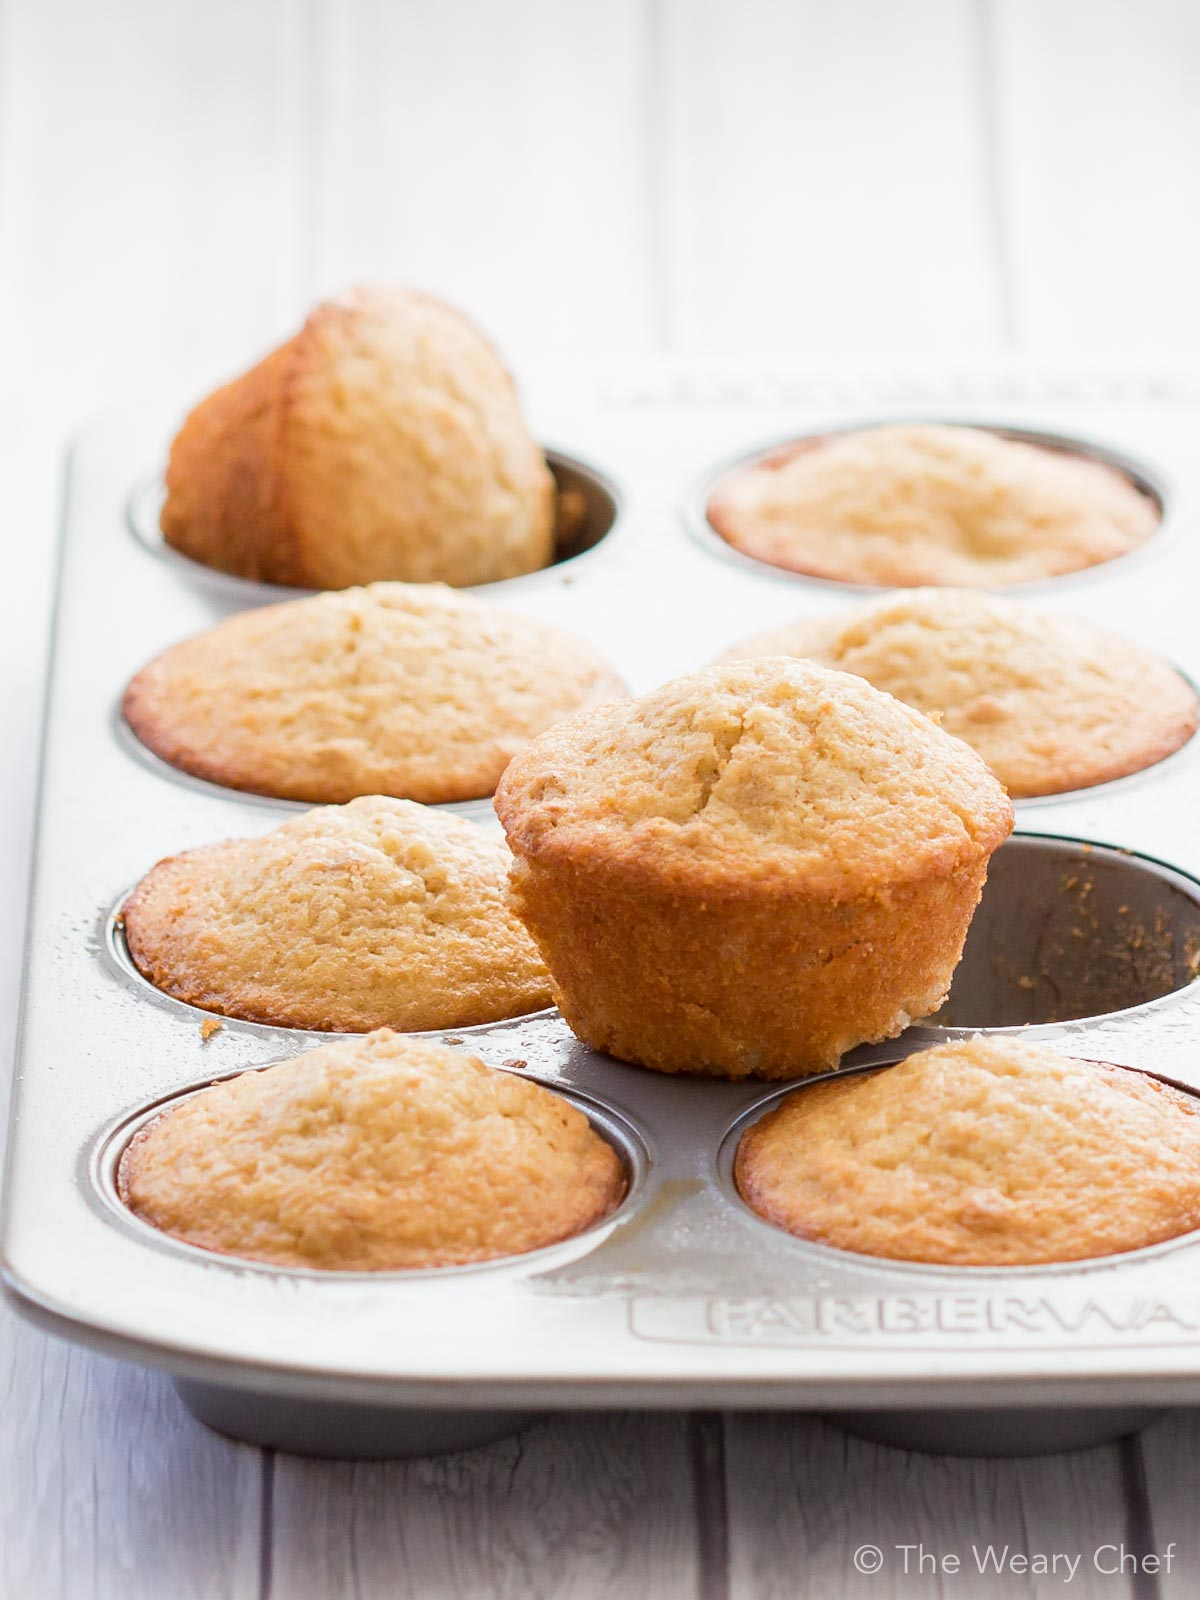 Banana, coconut, and pineapple muffins are made easy and delicious with Greek yogurt and baking mix!